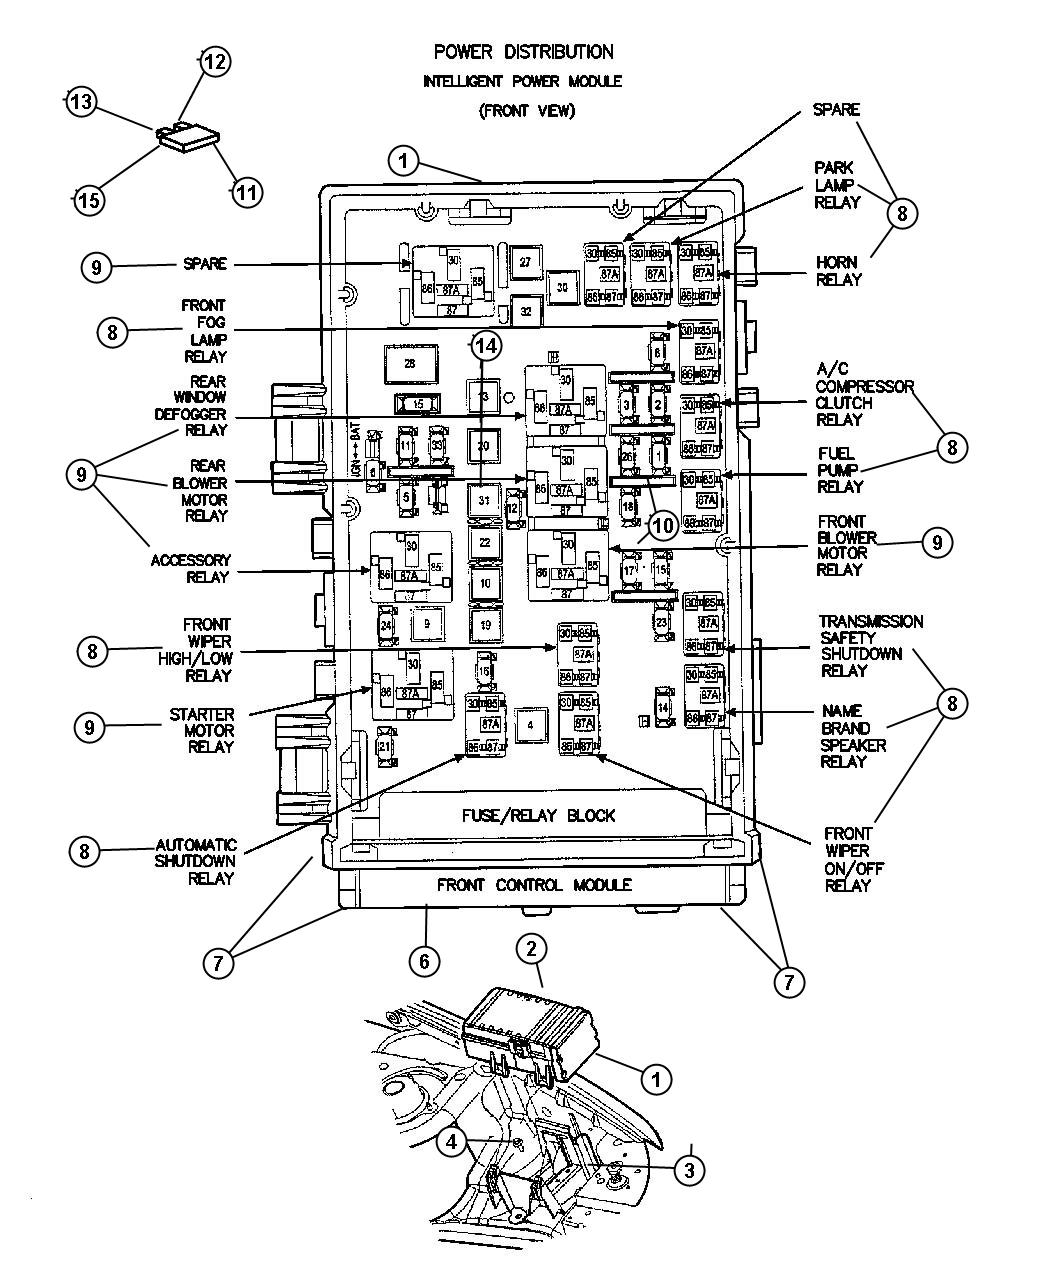 72F Fuse Box For Chrysler Town And Country | Wiring LibraryWiring Library